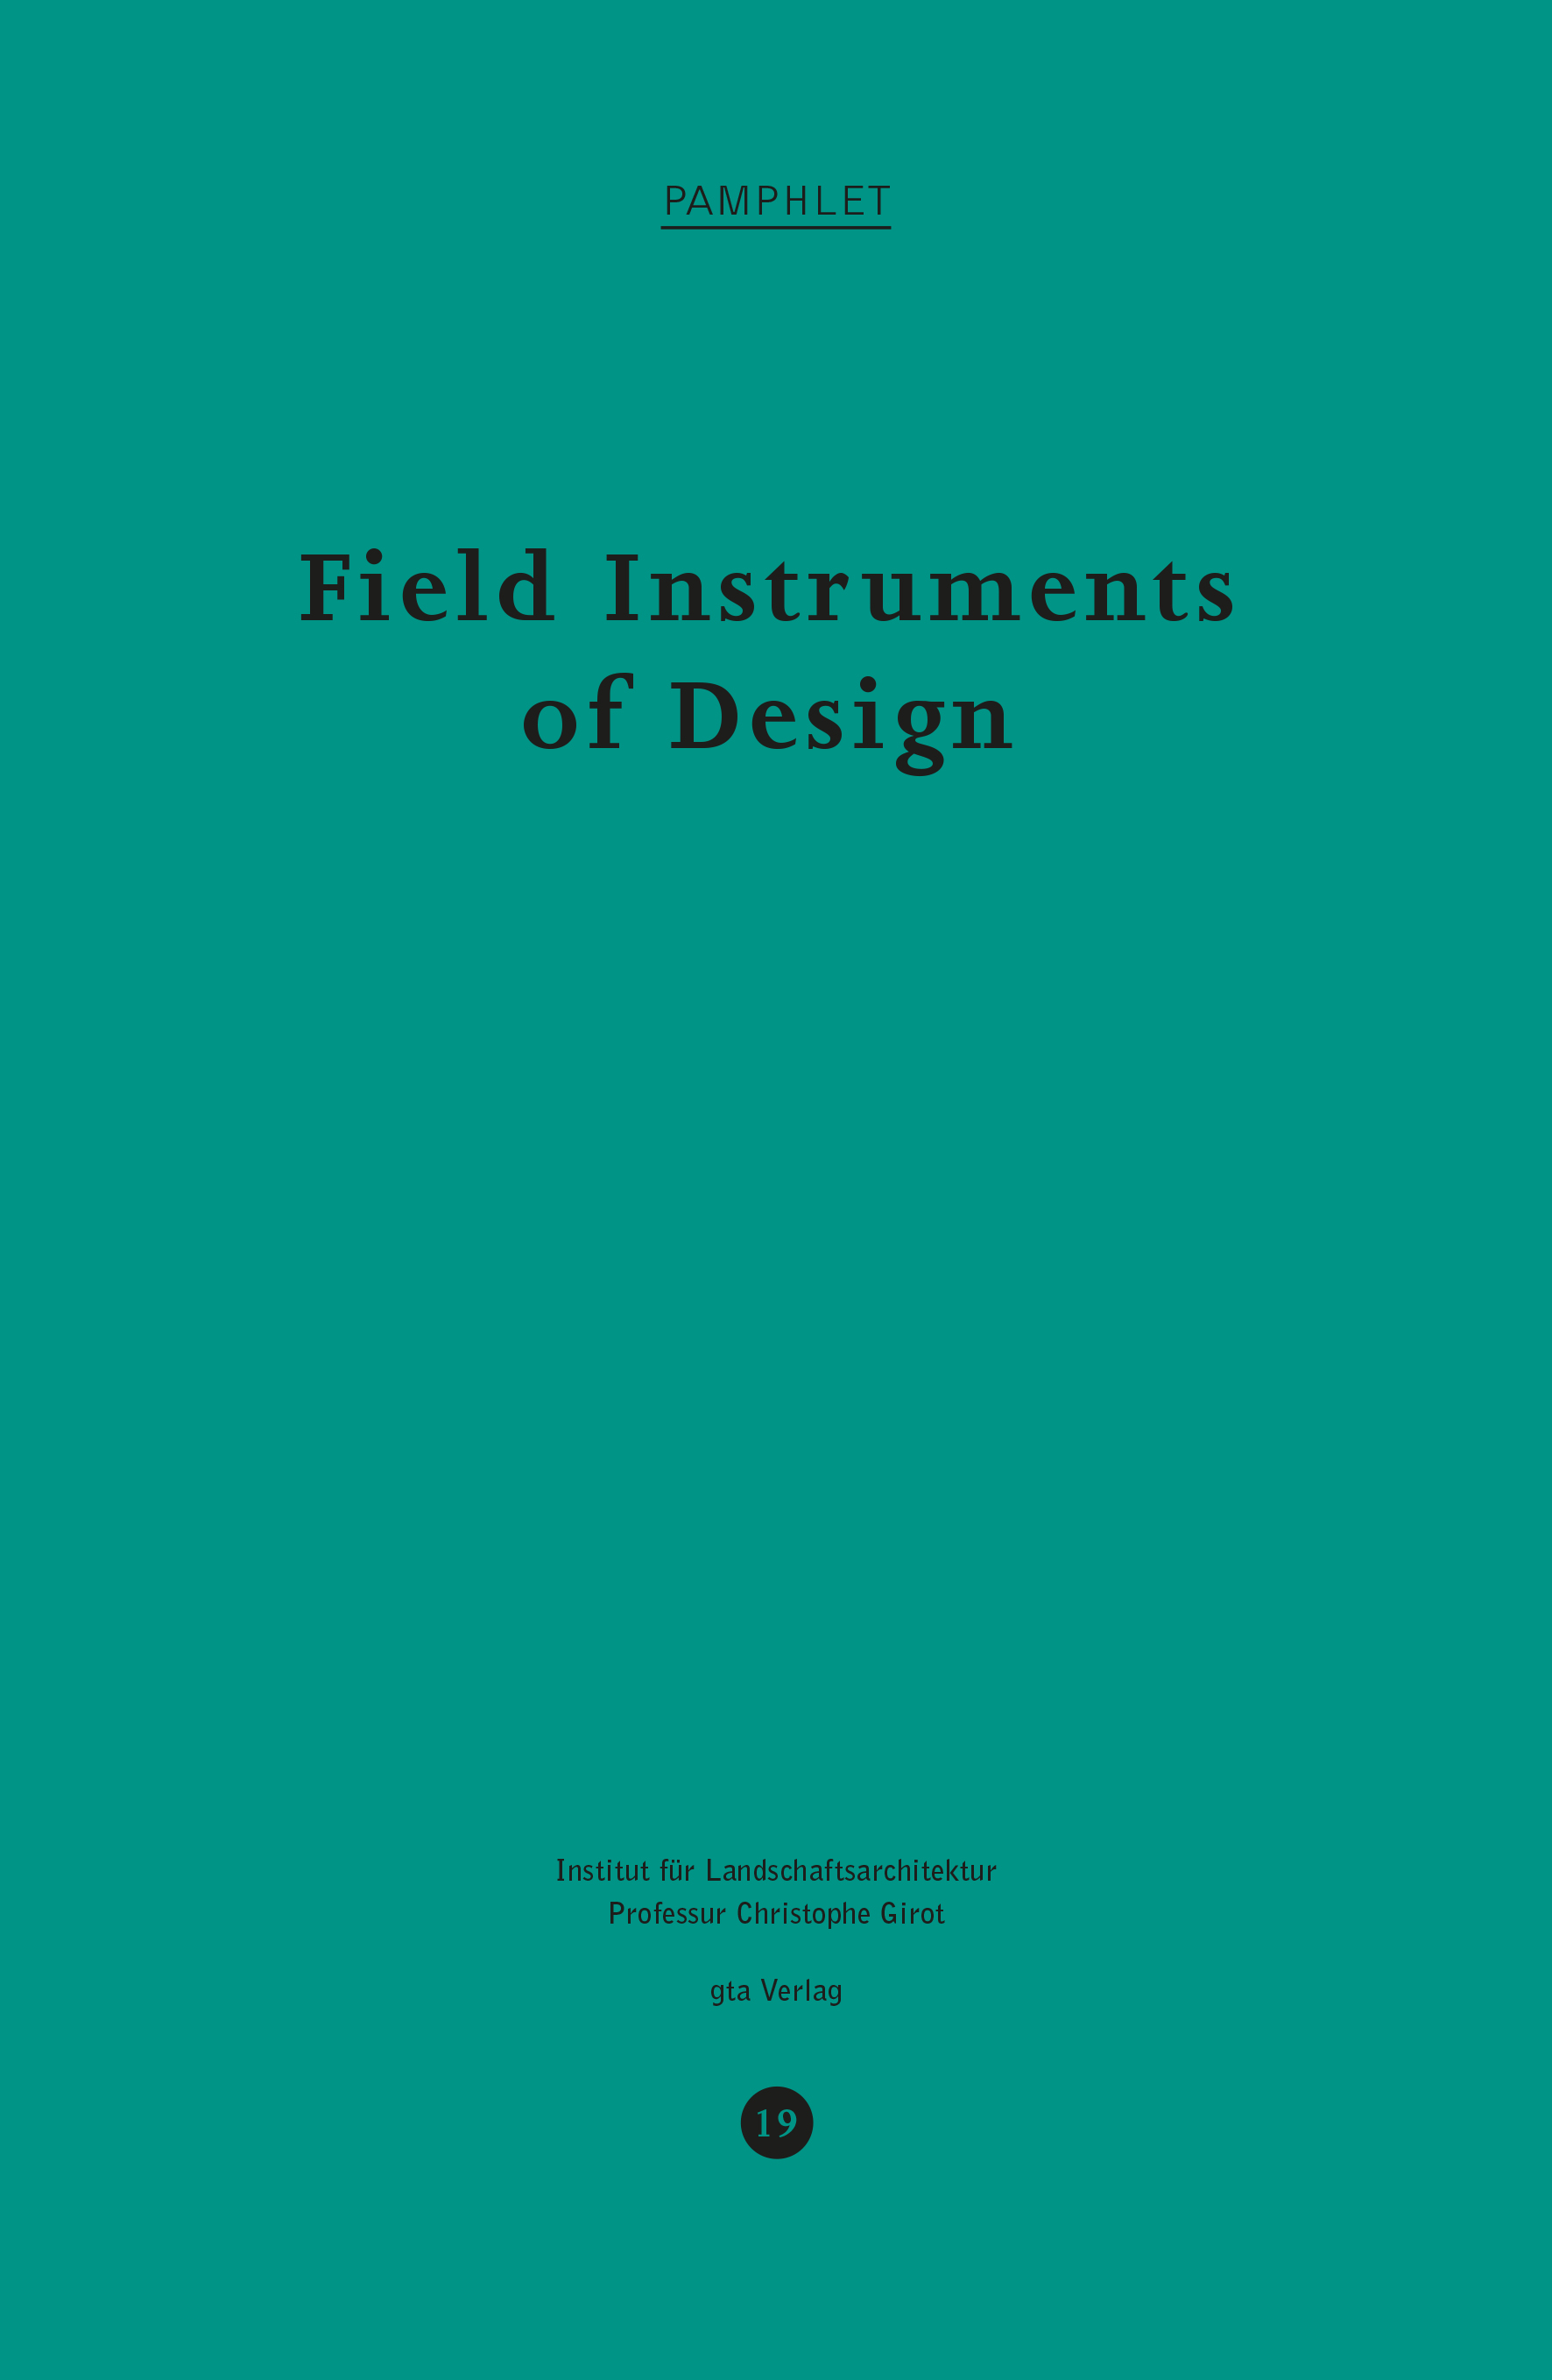 field instruments of design